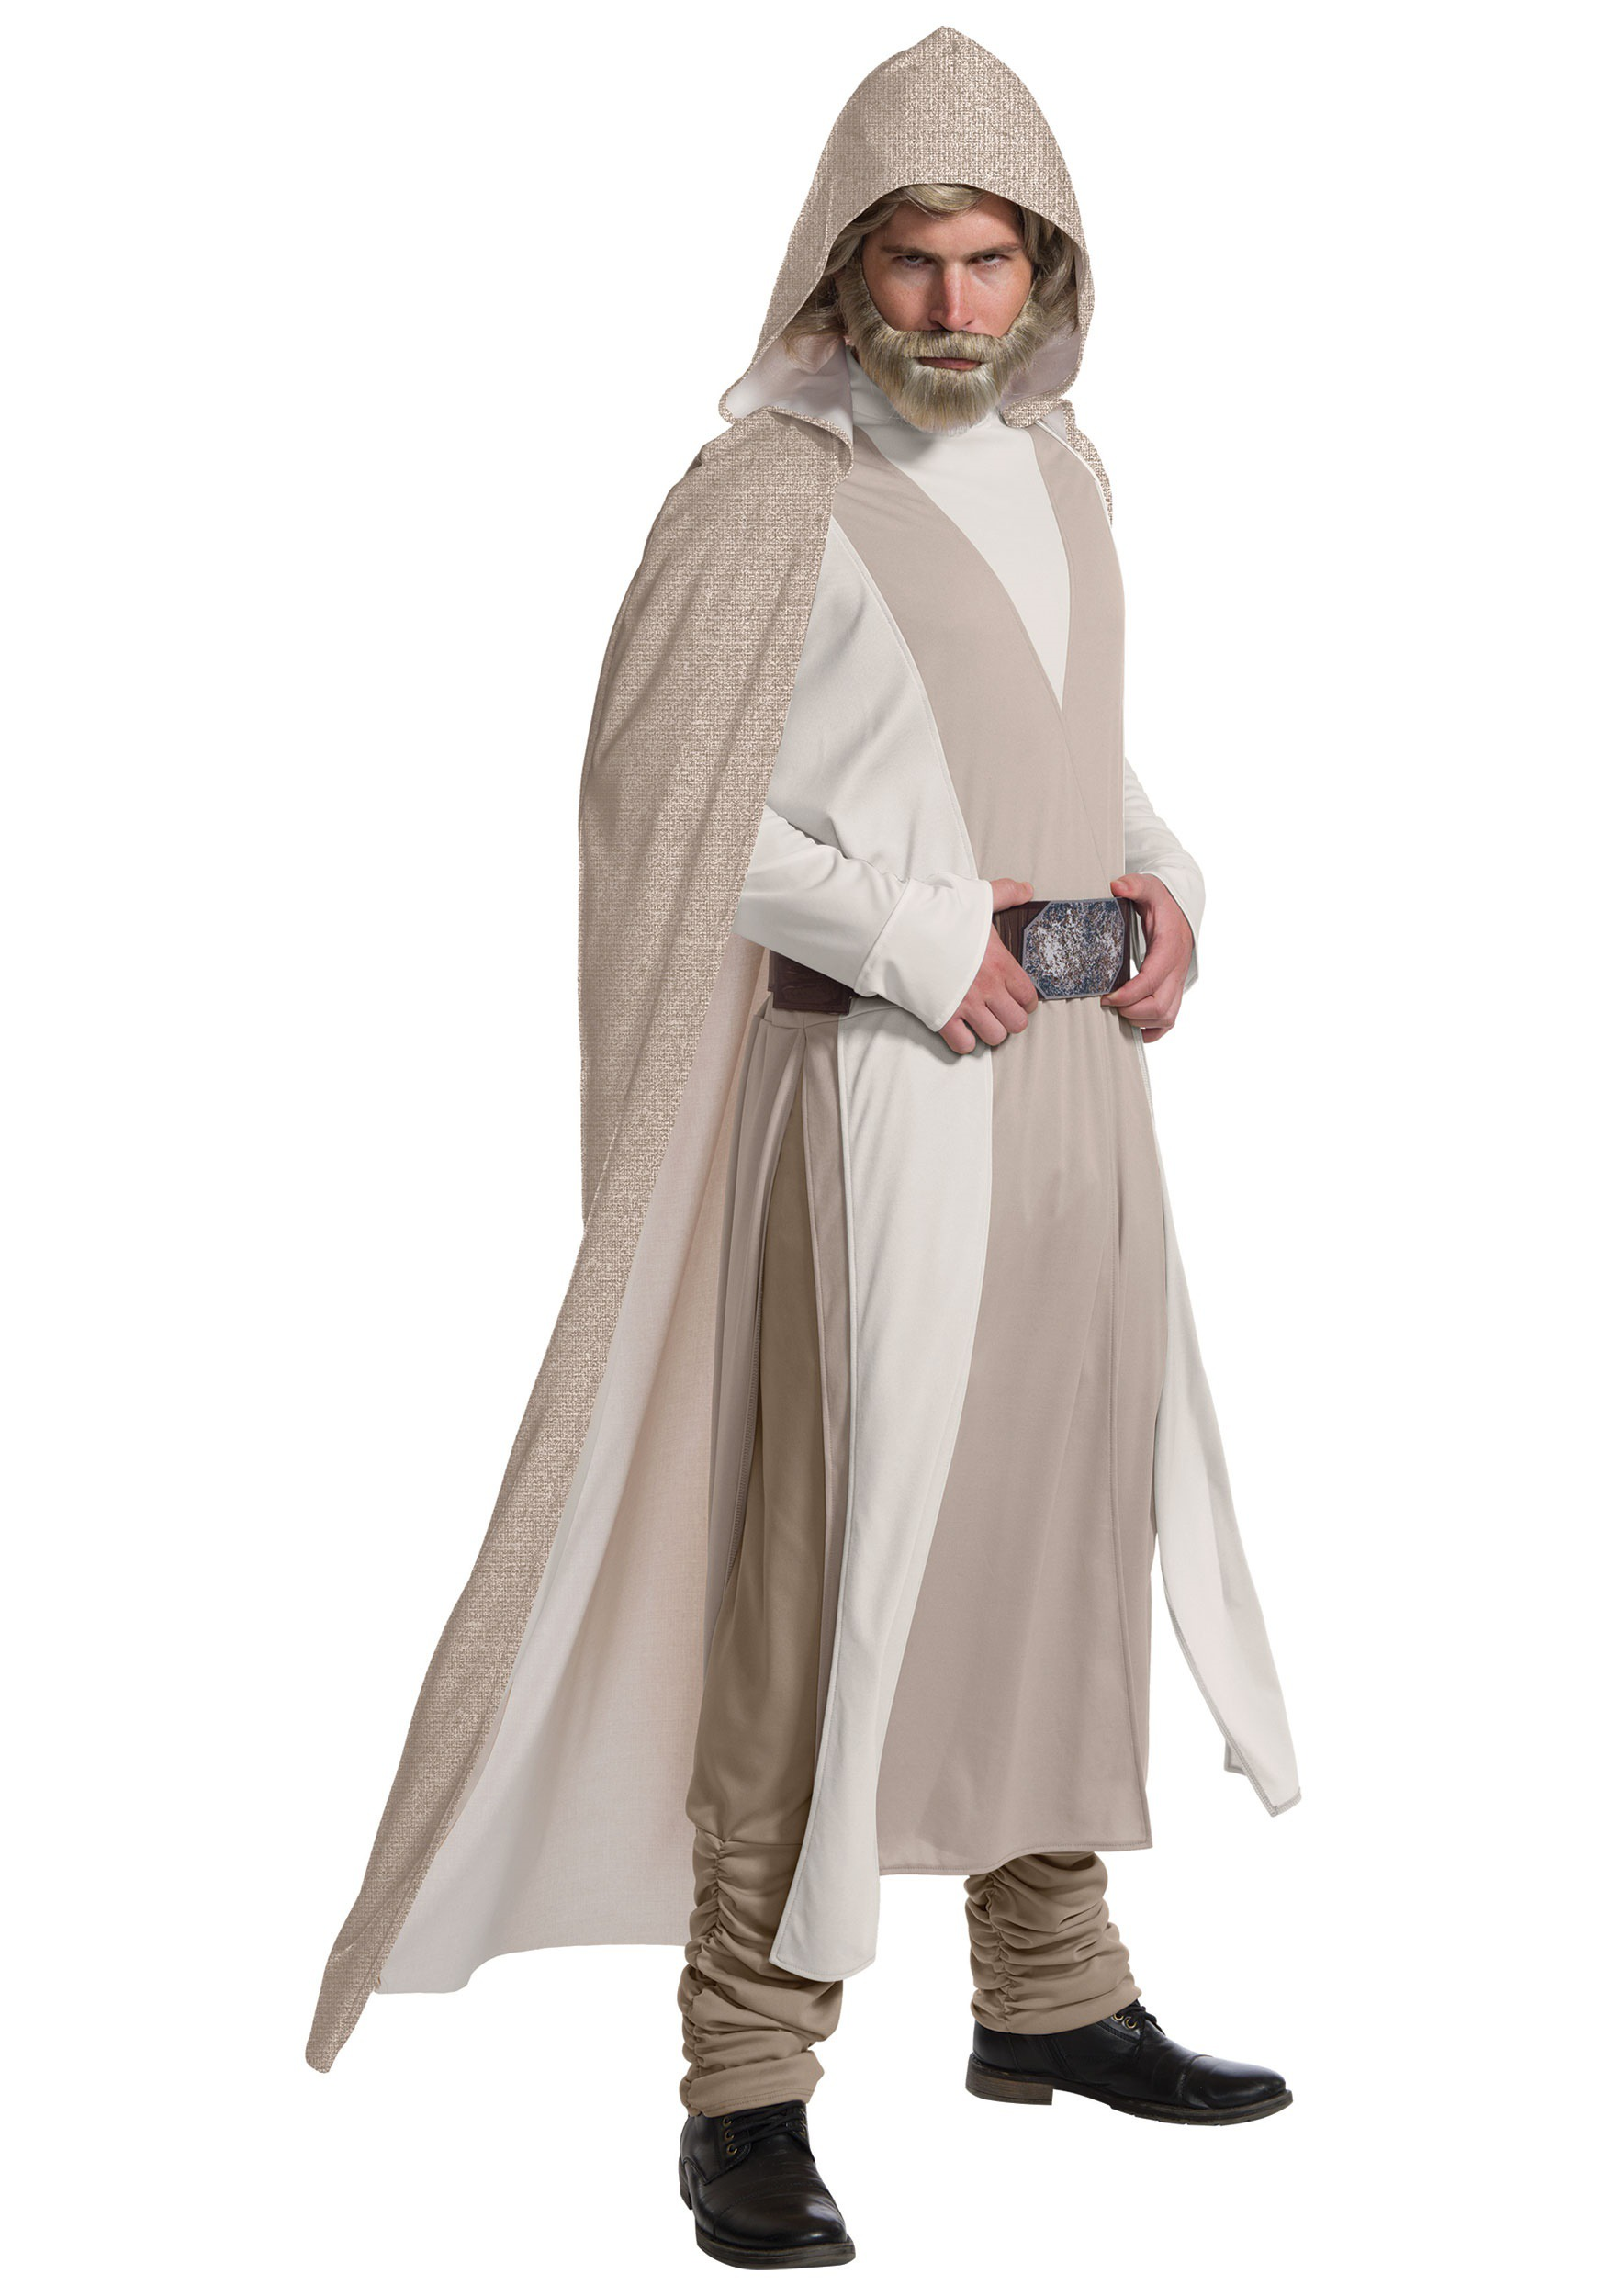 luke skywalker costume tutorial